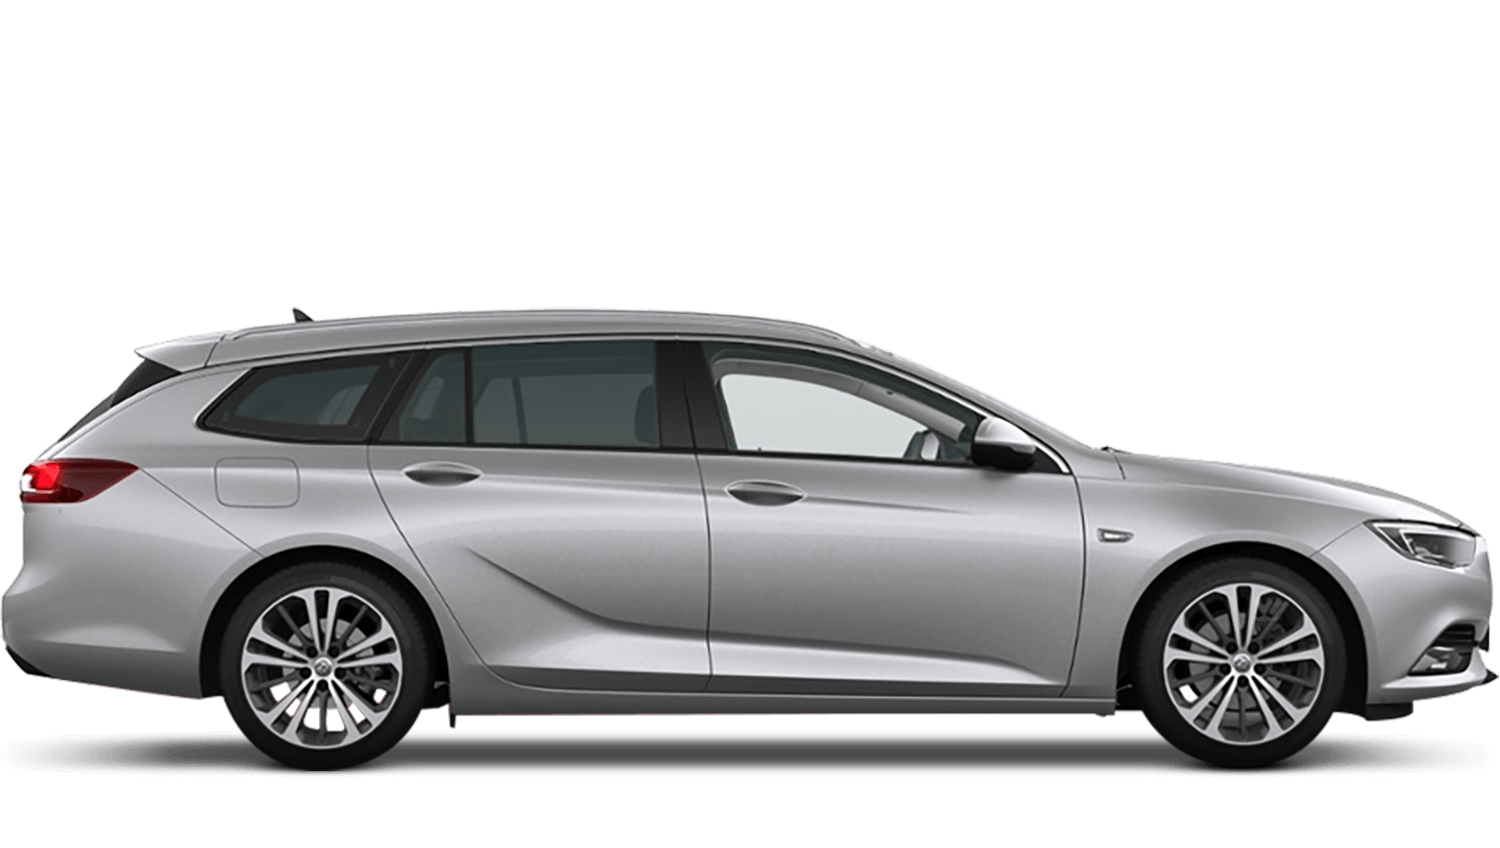 Sovereign Silver (Metallic) Vauxhall Insignia Sports Tourer